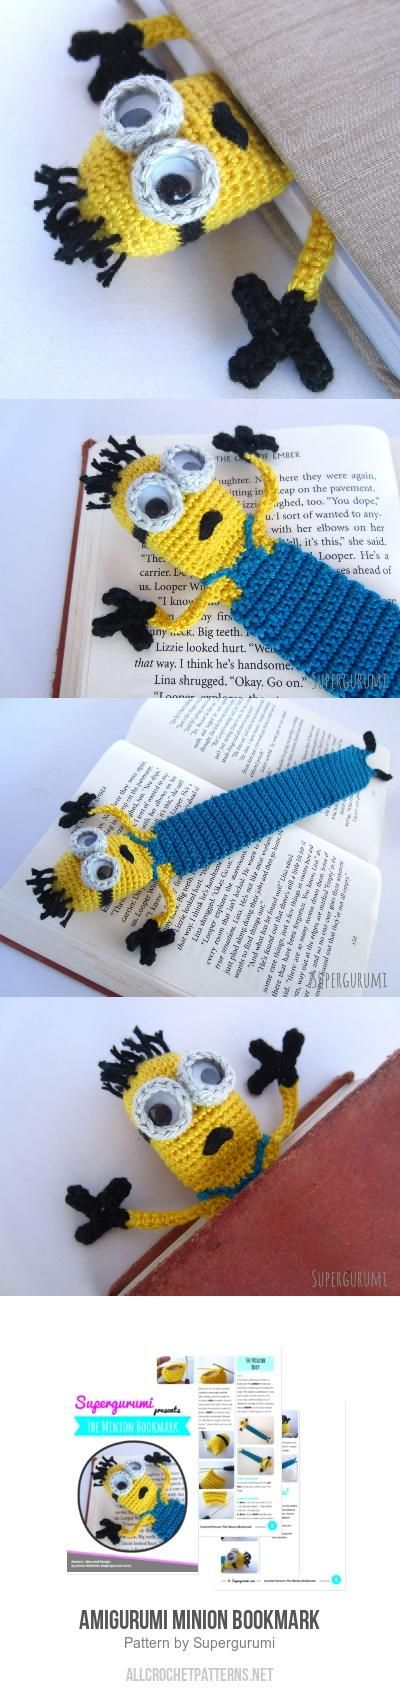 Amigurumi Minion Bookmark Crochet Pattern